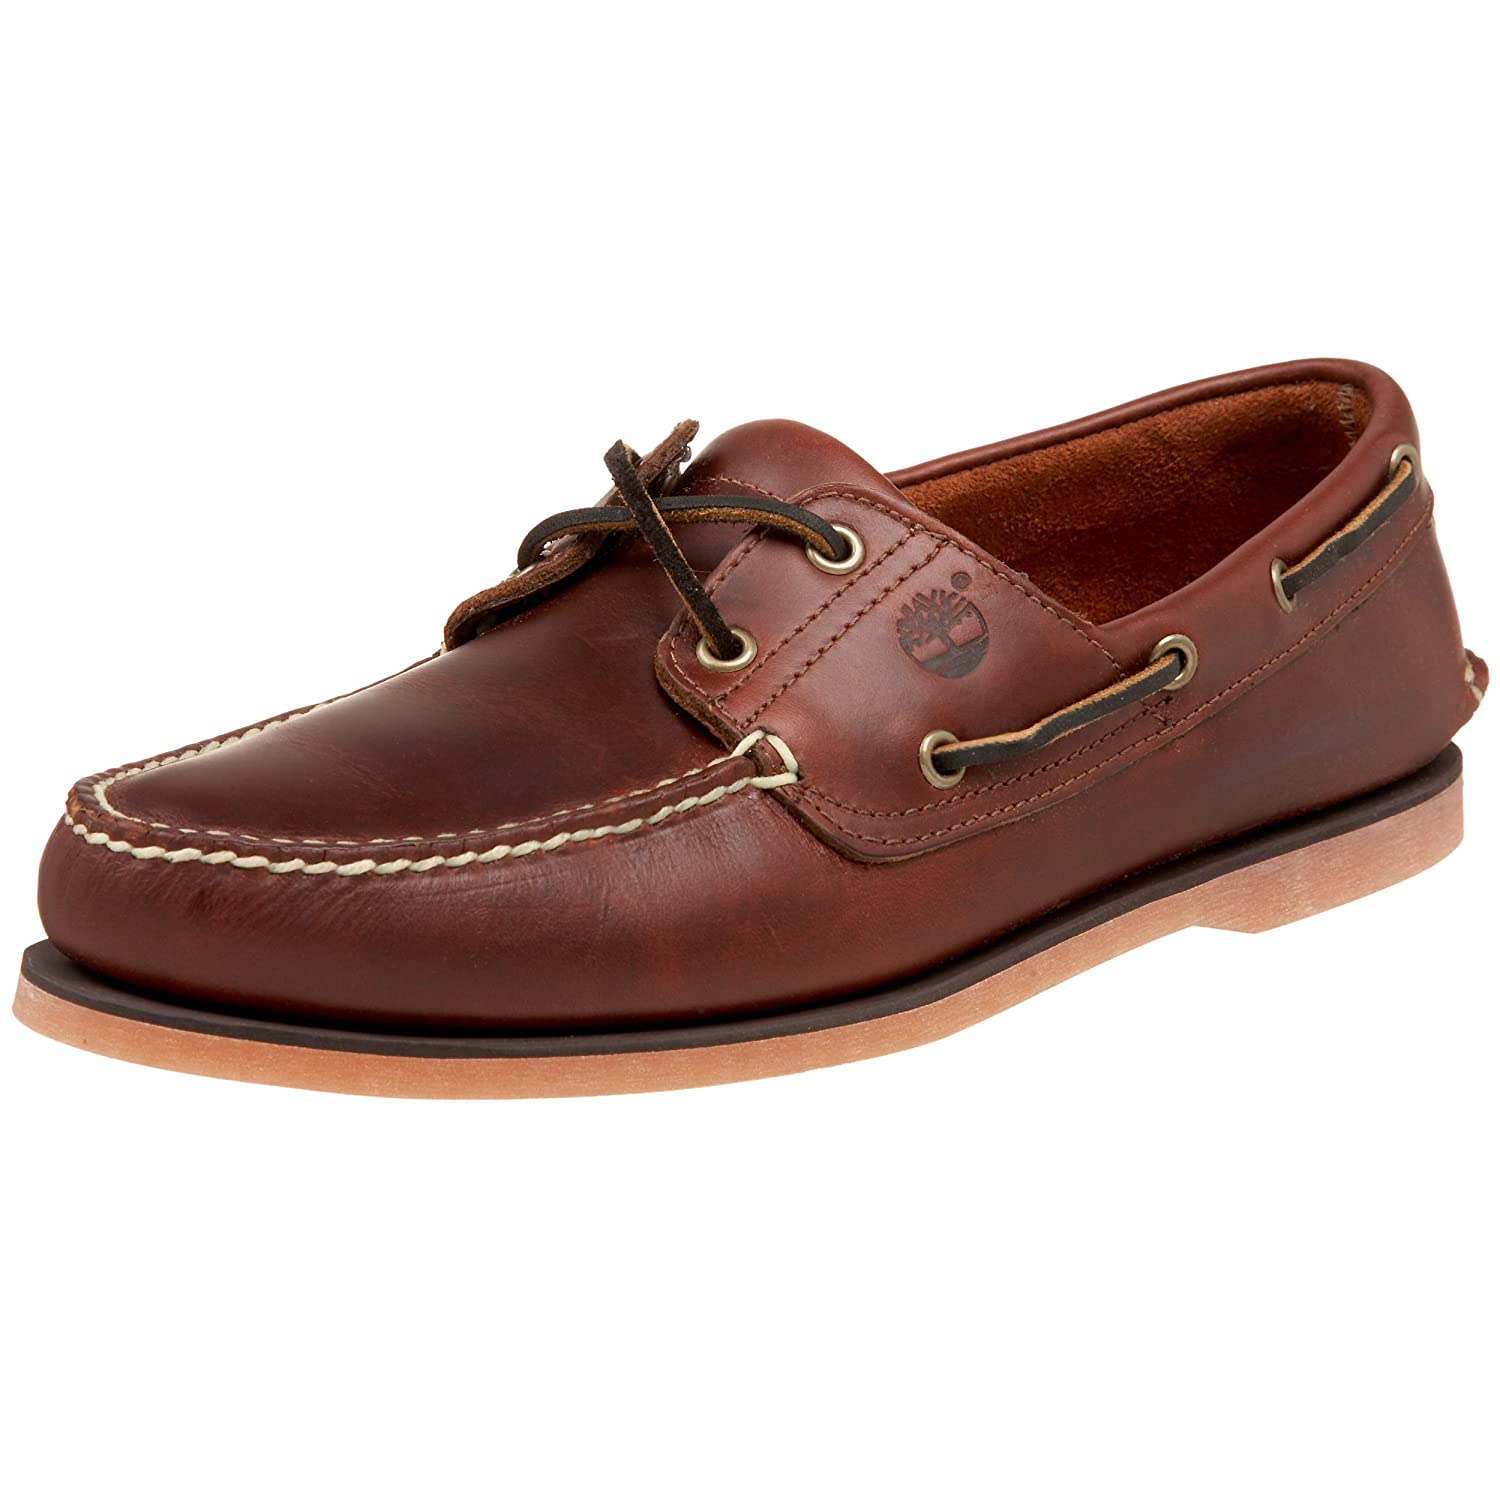 Timberland Men's Classic Boat Shoe